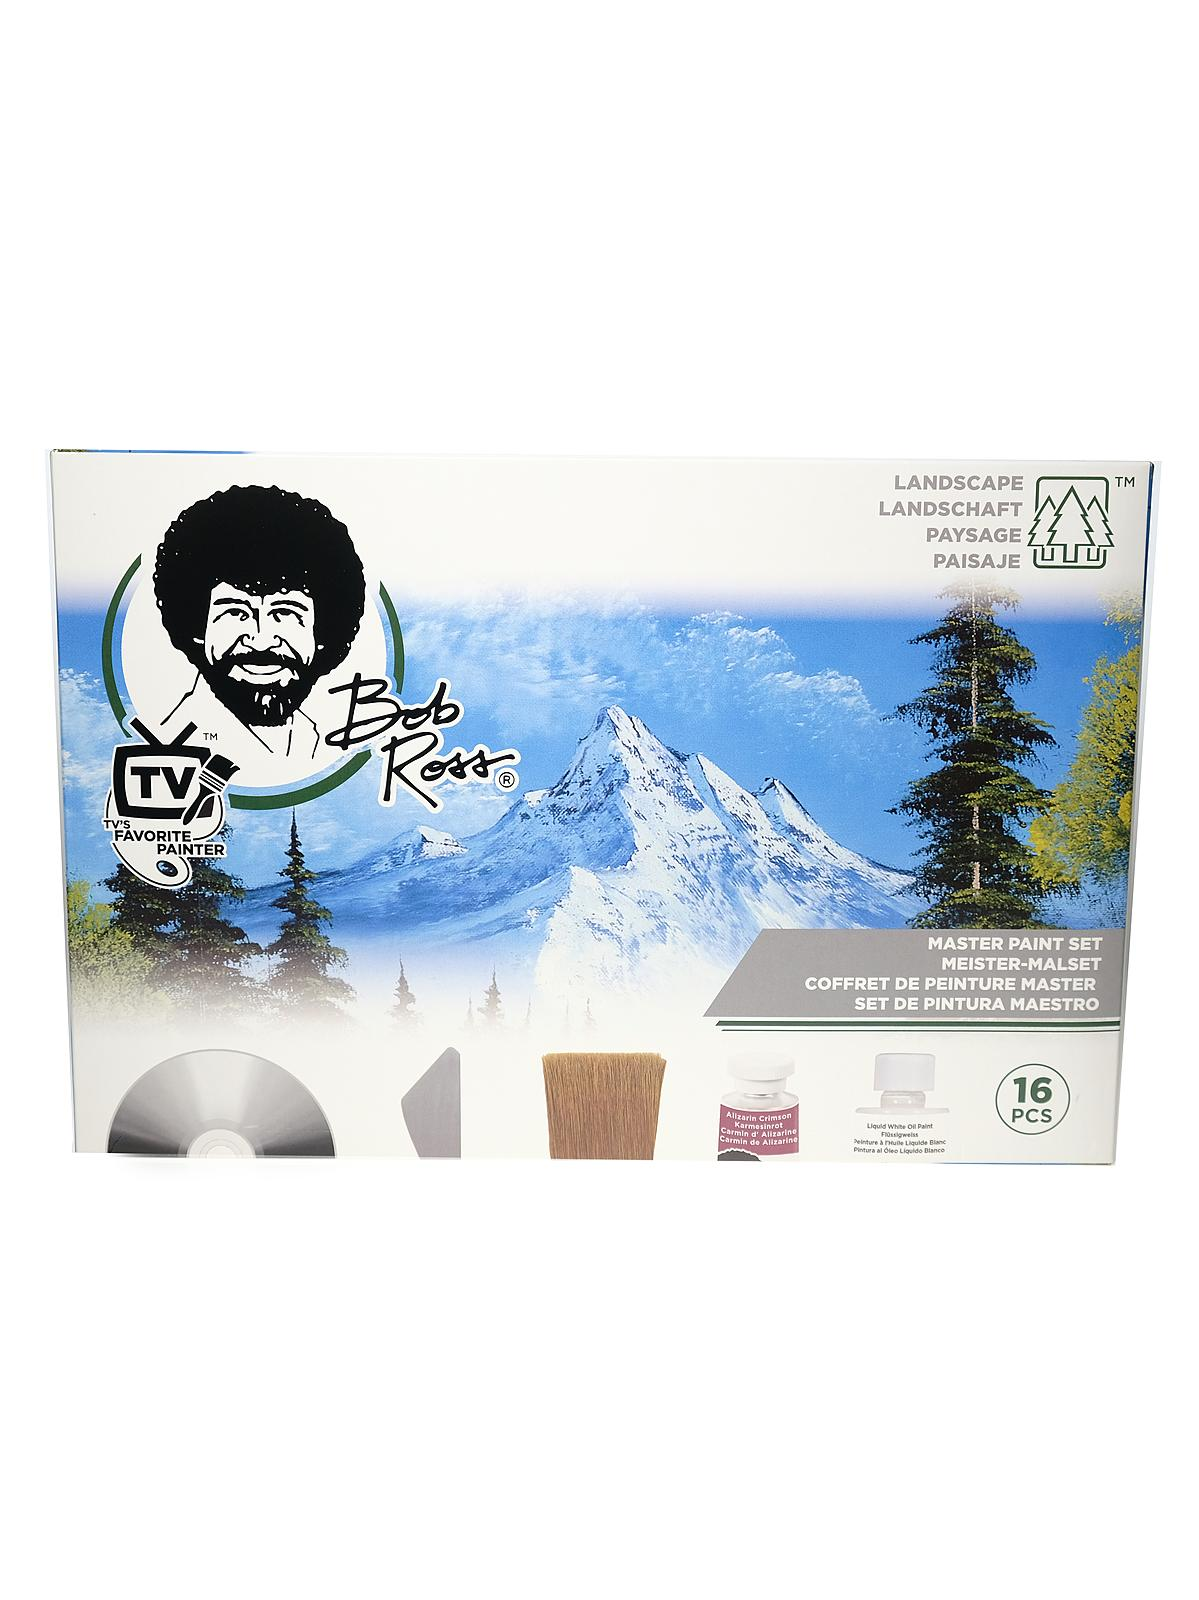 Bob Ross Master Paint Set Misterart Com